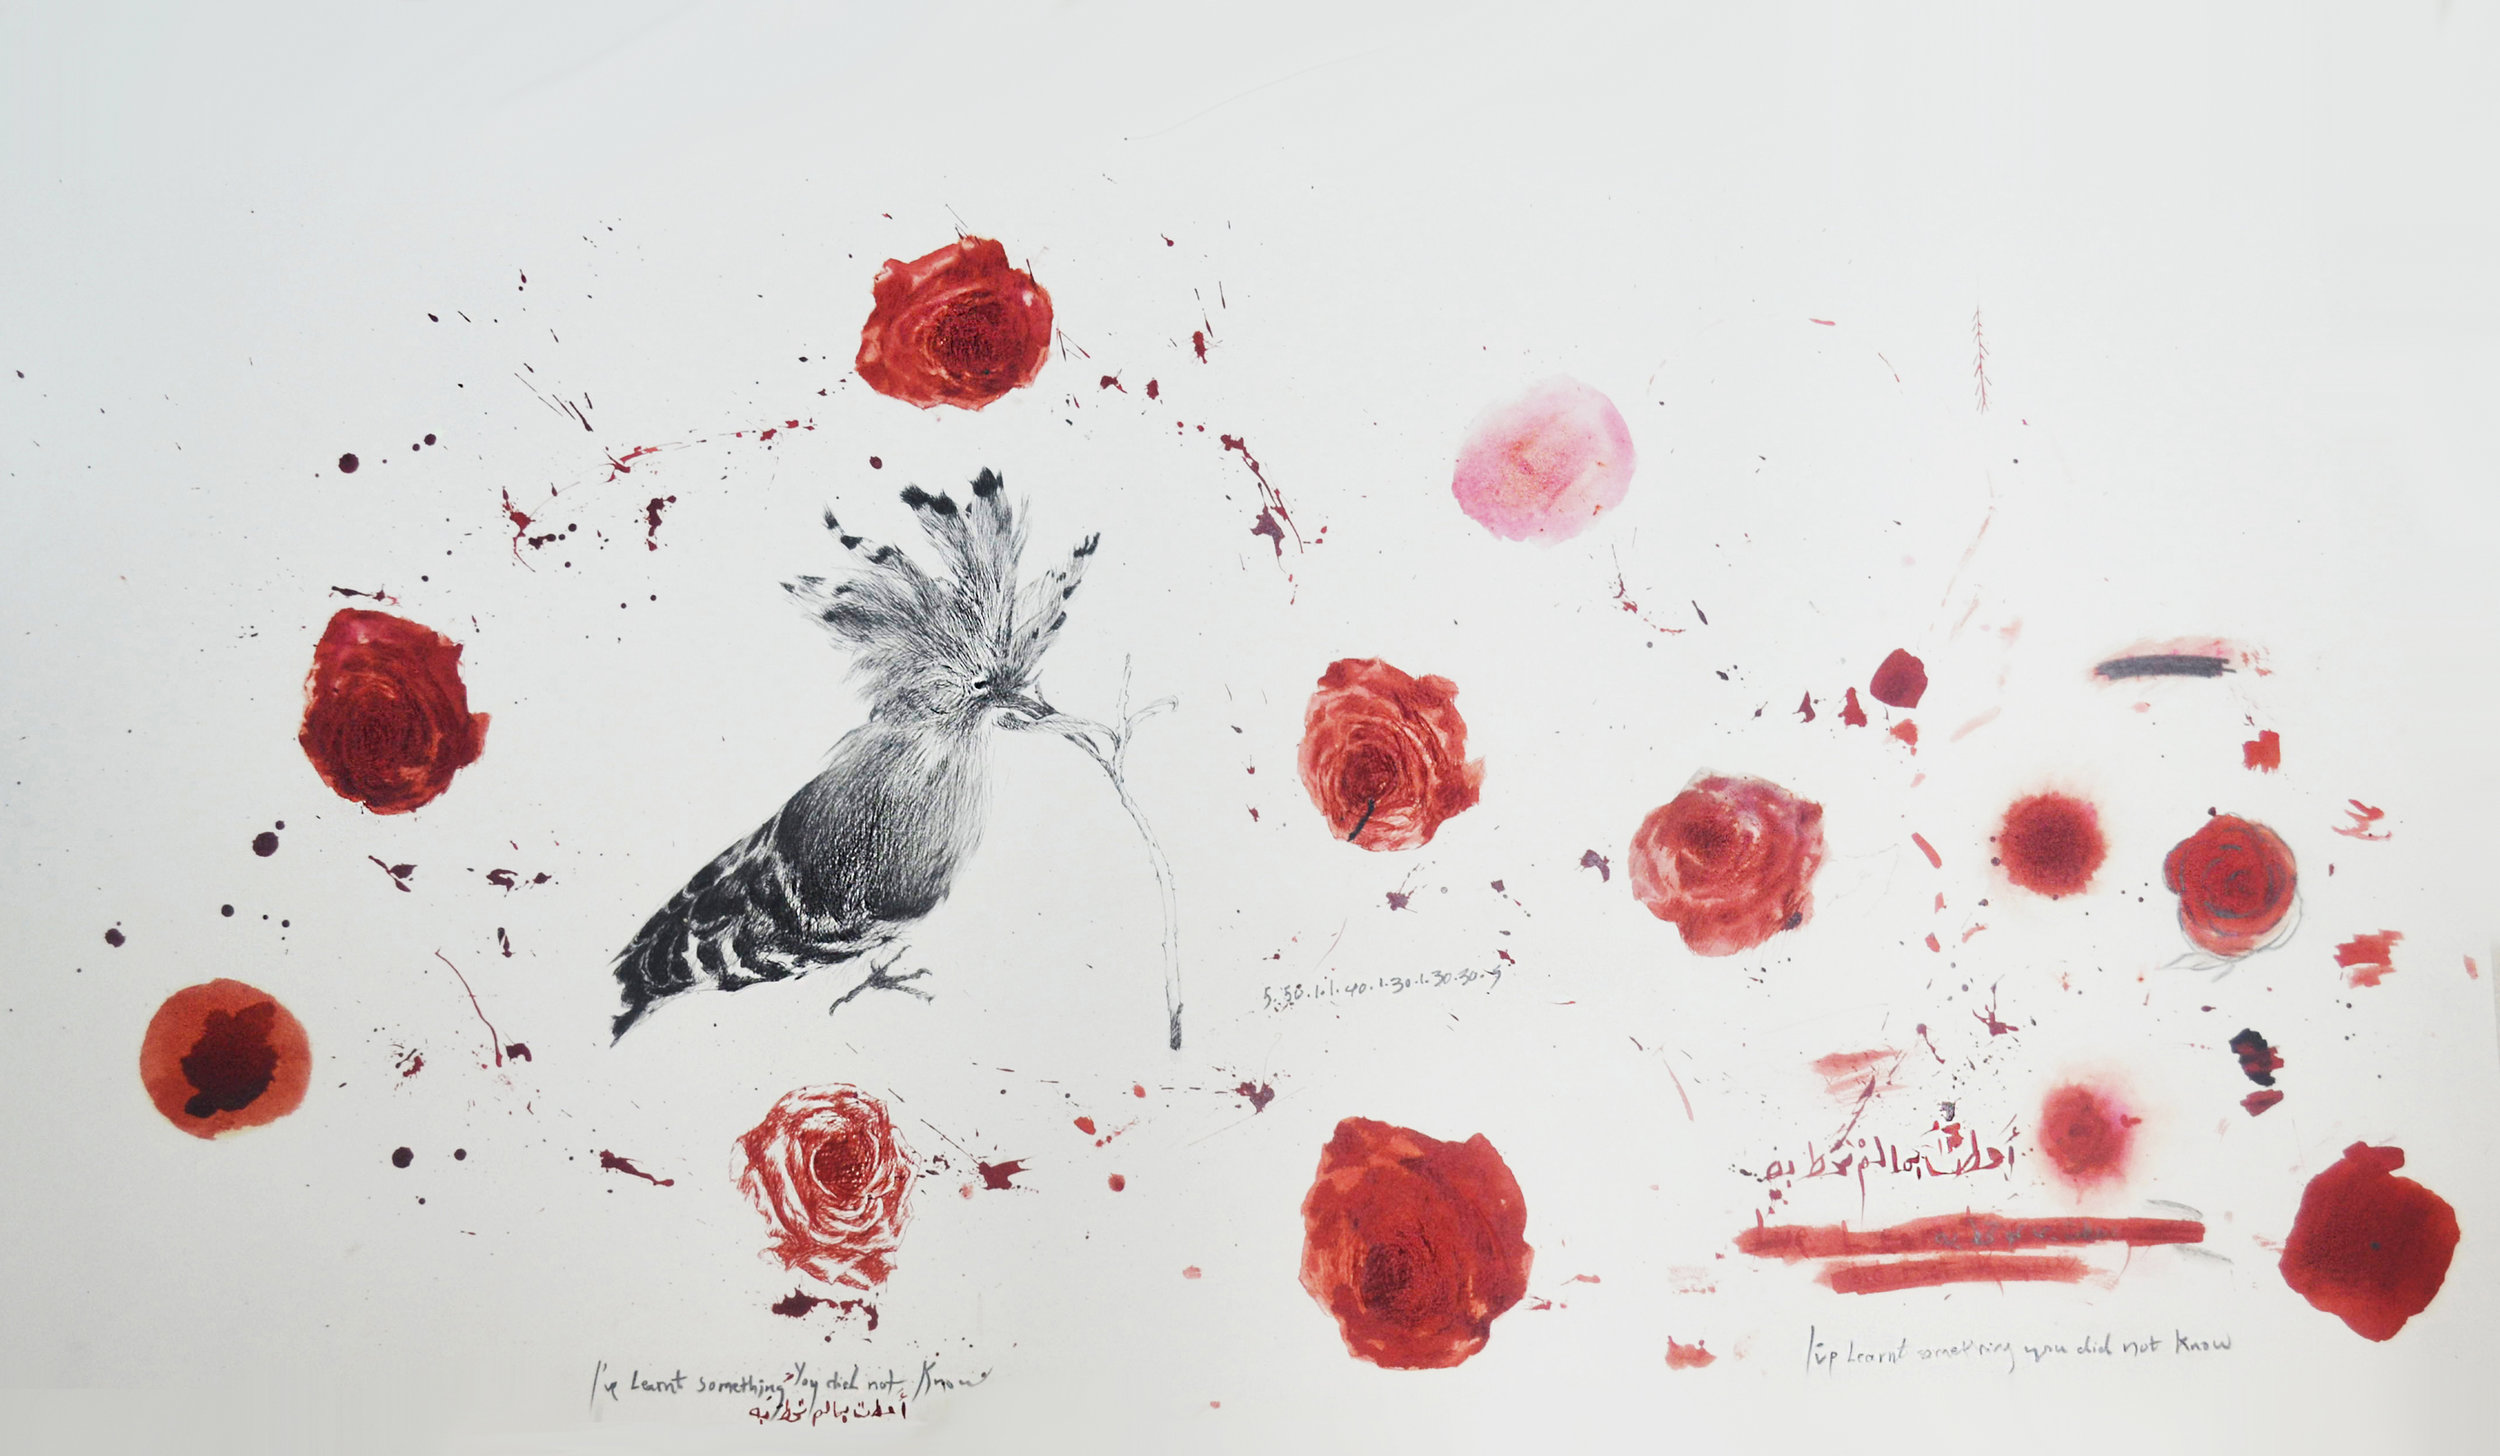 Hanaa Malallah,I Have Learnt Something You Did Not Know,2015, black and red Ink on paper, 60 x 100 cm. Image courtesy of the artist